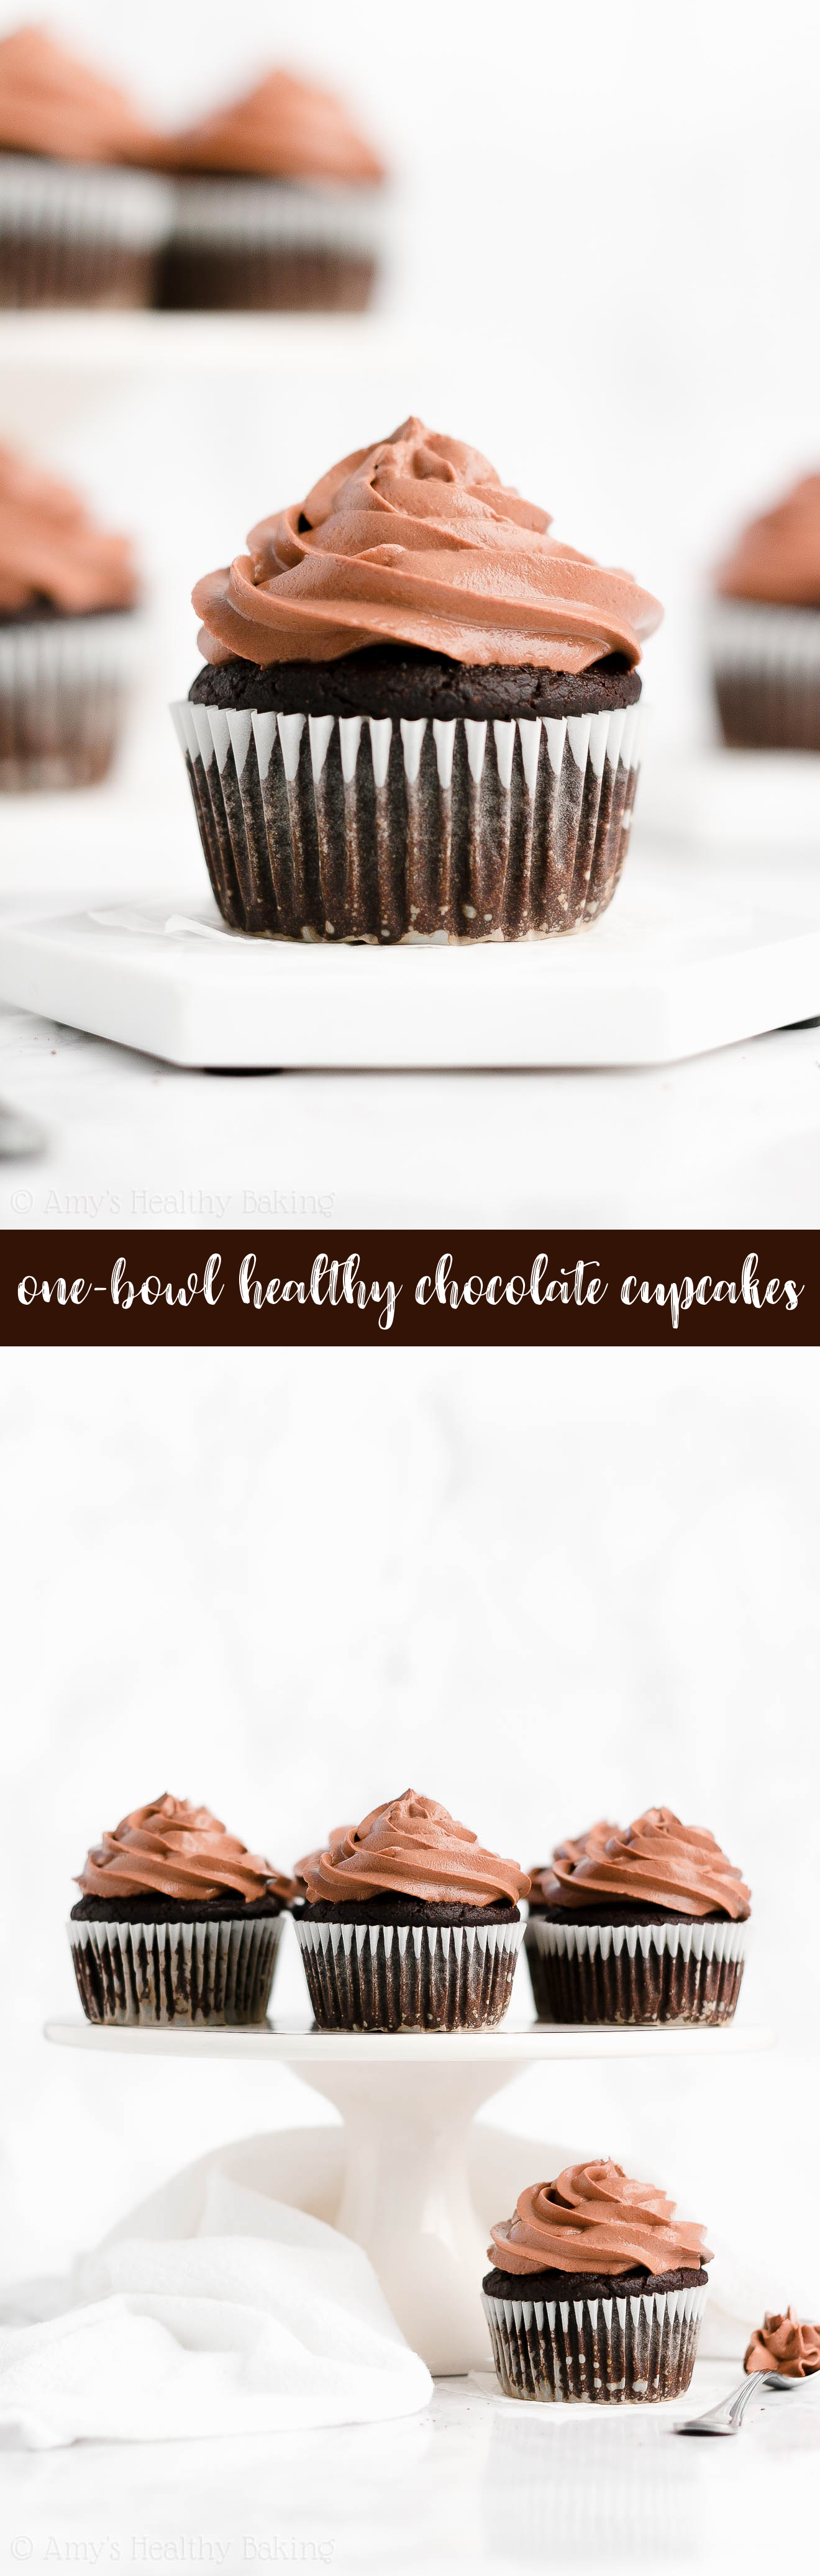 Best Ever Easy Healthy No Sugar One-Bowl Greek Yogurt Dark Chocolate Cupcakes